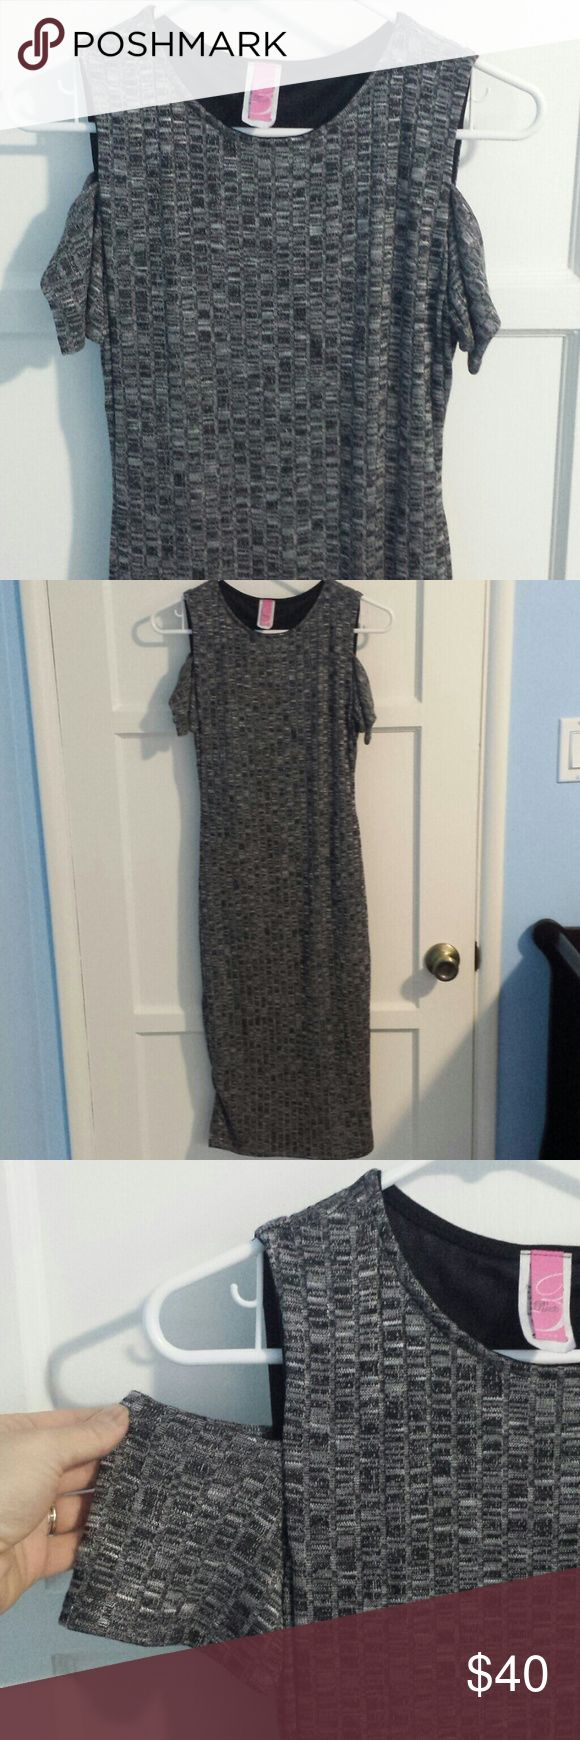 "NWOT Below the Knee Dress with Shoulder Sleeves Brand new without tags comfortable dress. It has off the shoulder straps. It comes below the knee. 43"" from Shoulder to the bottom.  95% Polyester 5% Spandex Route U.S.A Dresses Midi"